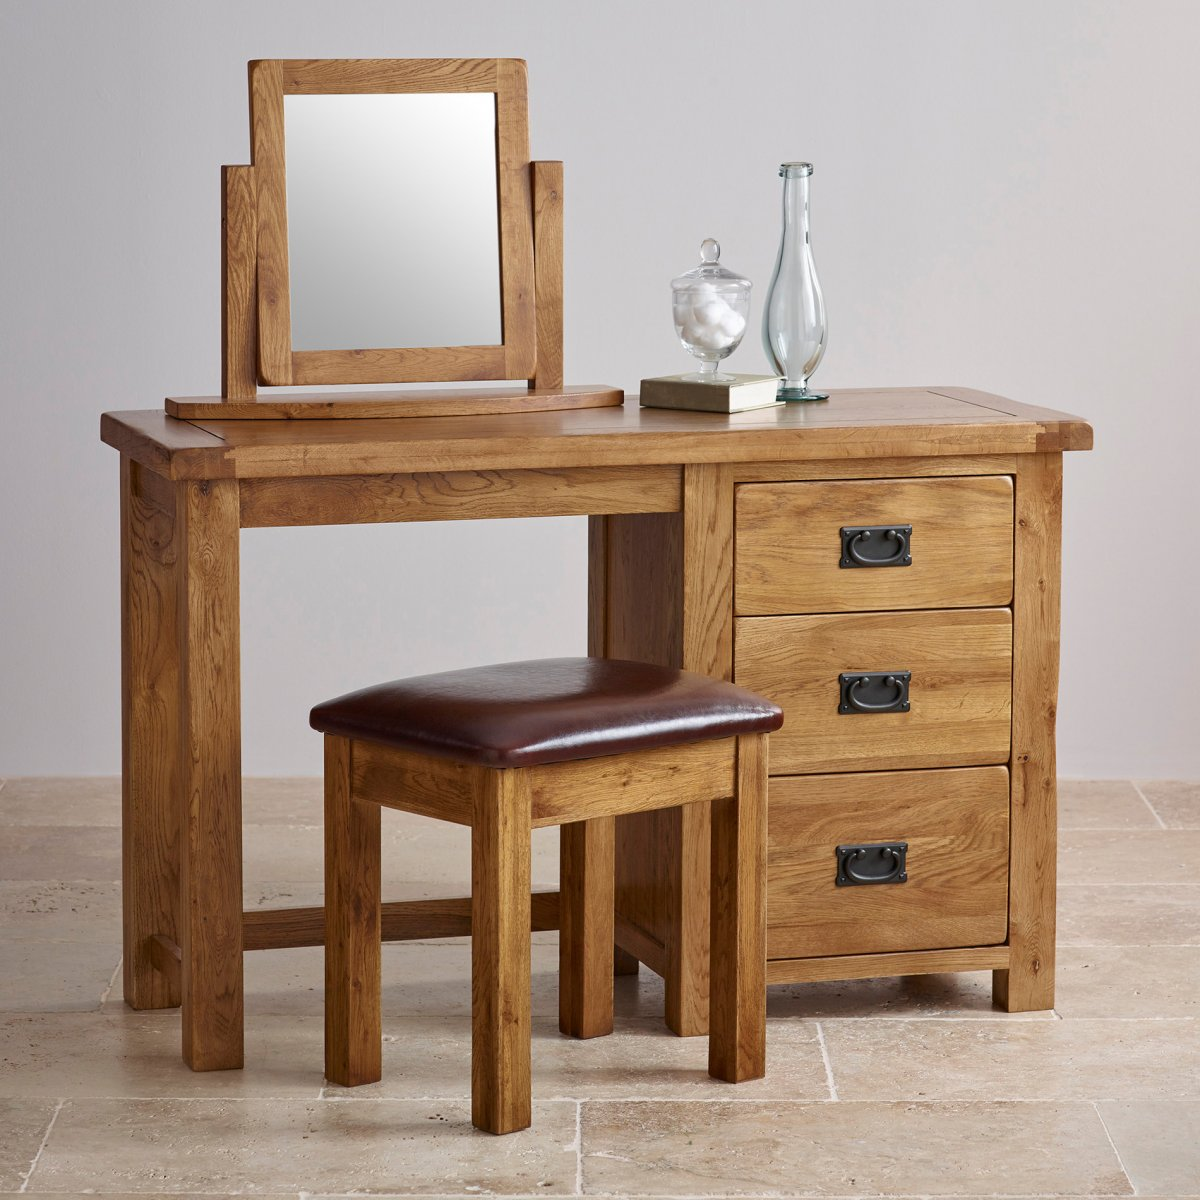 Original rustic dressing table set in solid oak